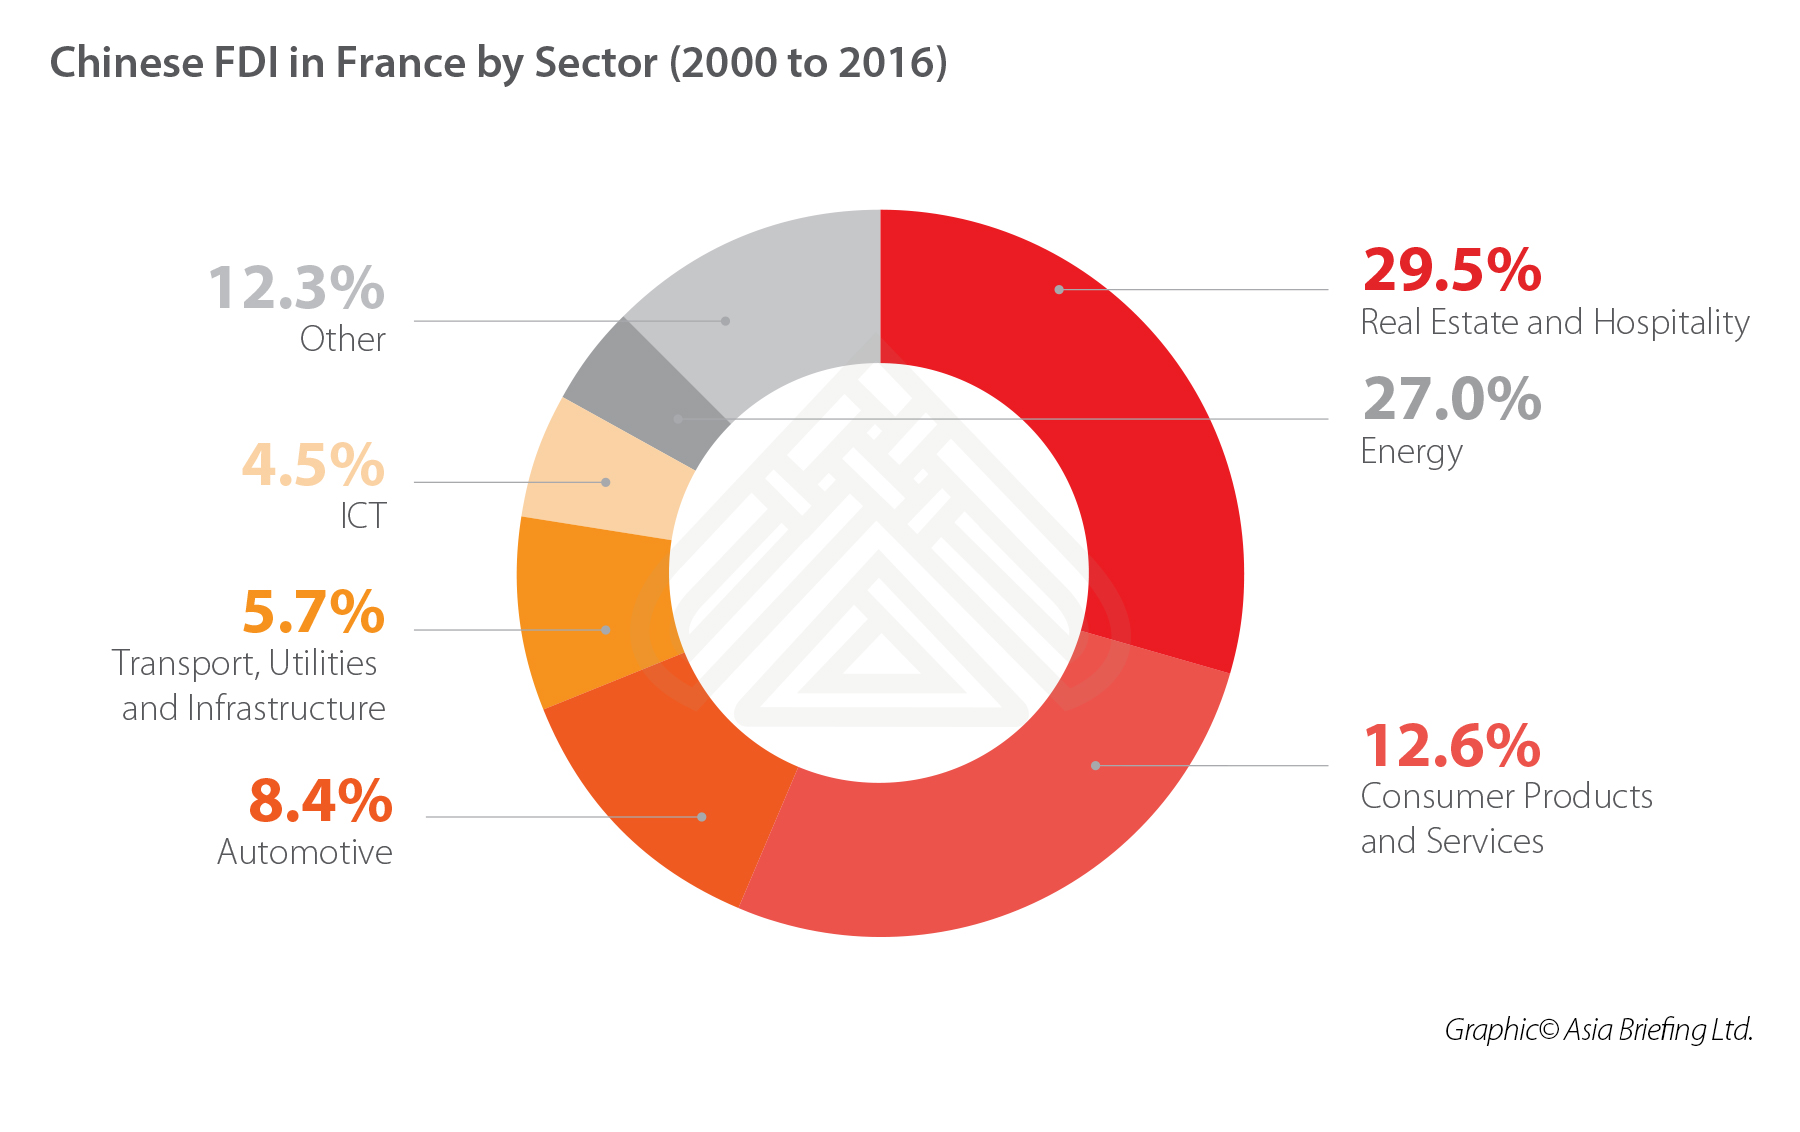 CHINA-FDI-FRANCE-SECTOR-WISE